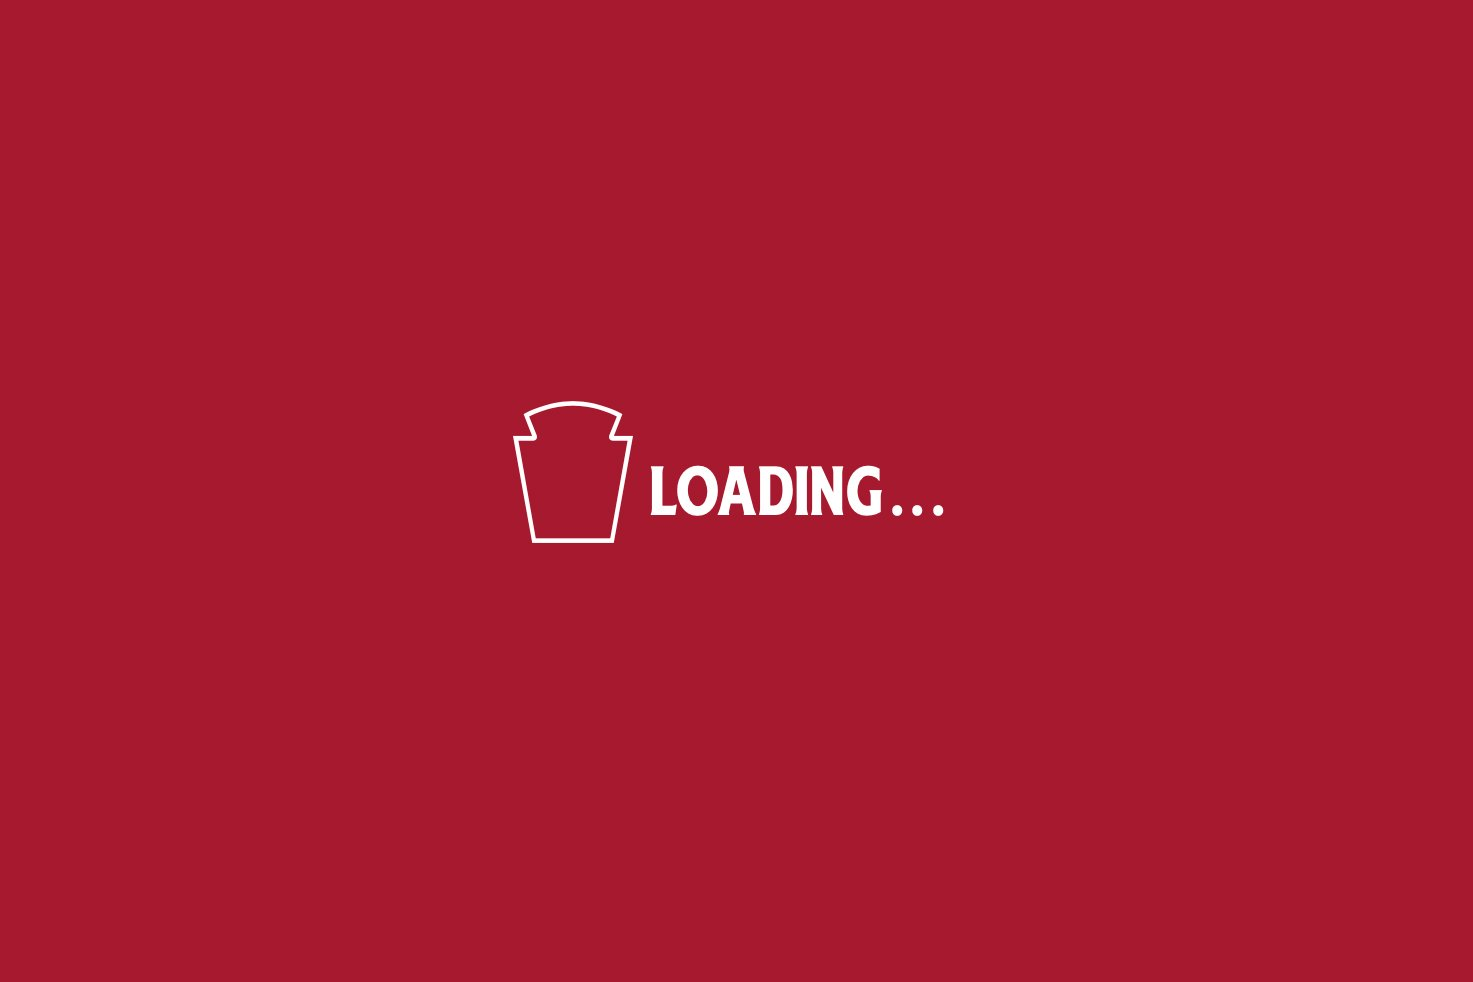 The Heinz ketchup website takes 57 minutes to load